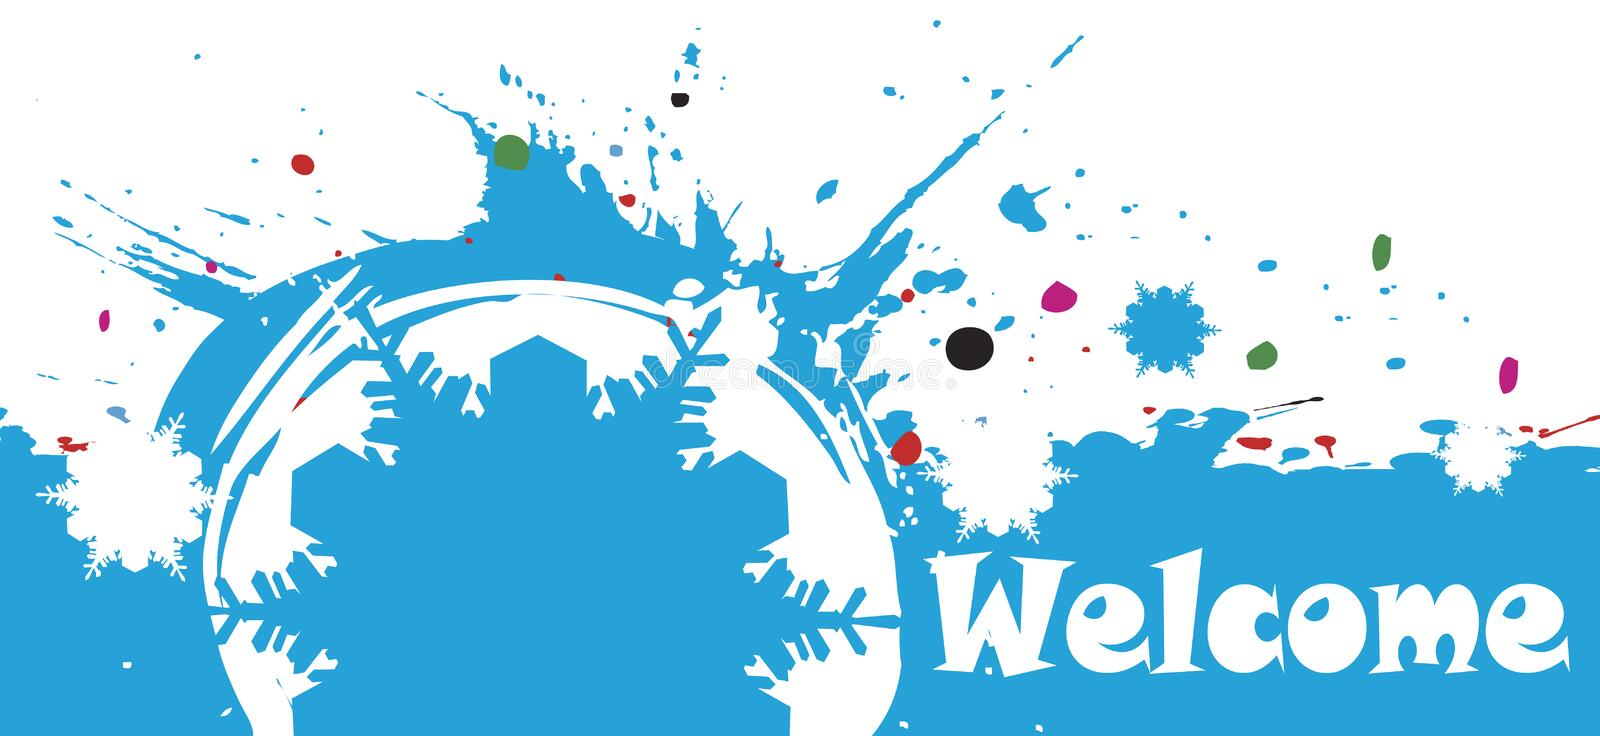 Abstract colorful winter background.Welcome banner stock illustration